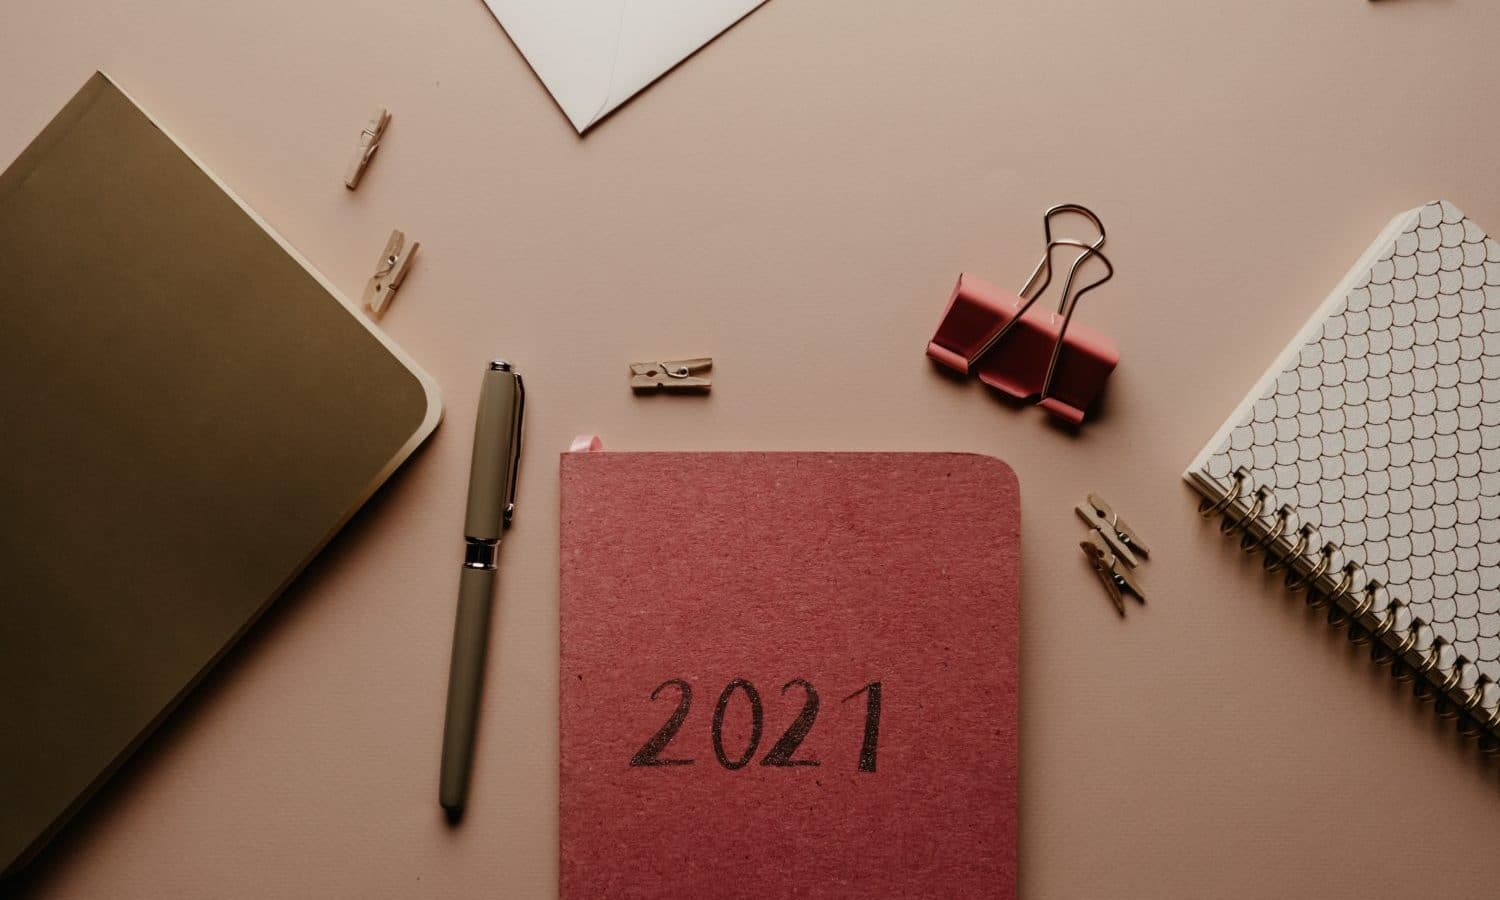 5 Excellent Personal Habits To Pick Up For The New Year